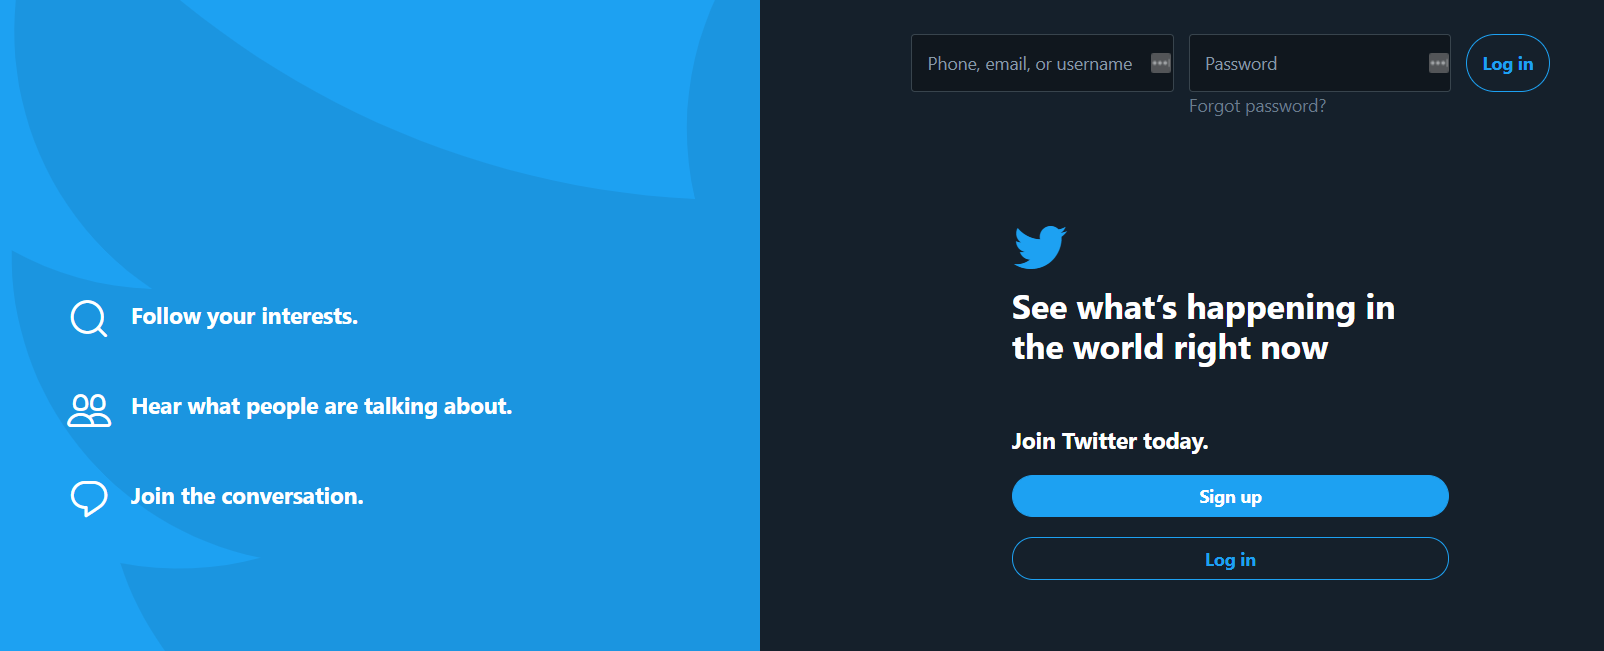 Twitter's page for signing up